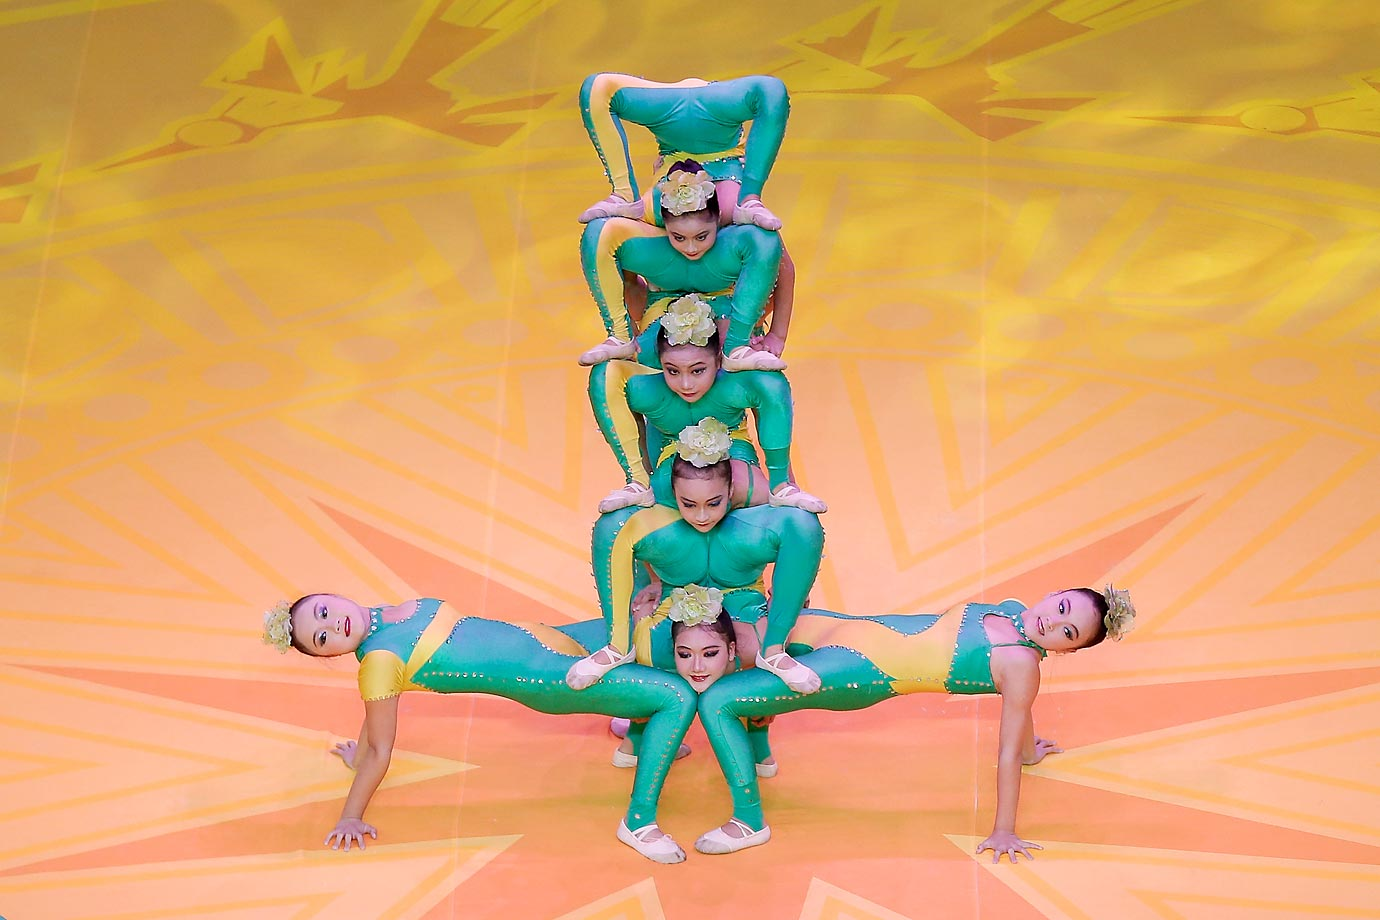 Dancers perform during the opening ceremony of the 45th Artistic Gymnastics World Championships in China.